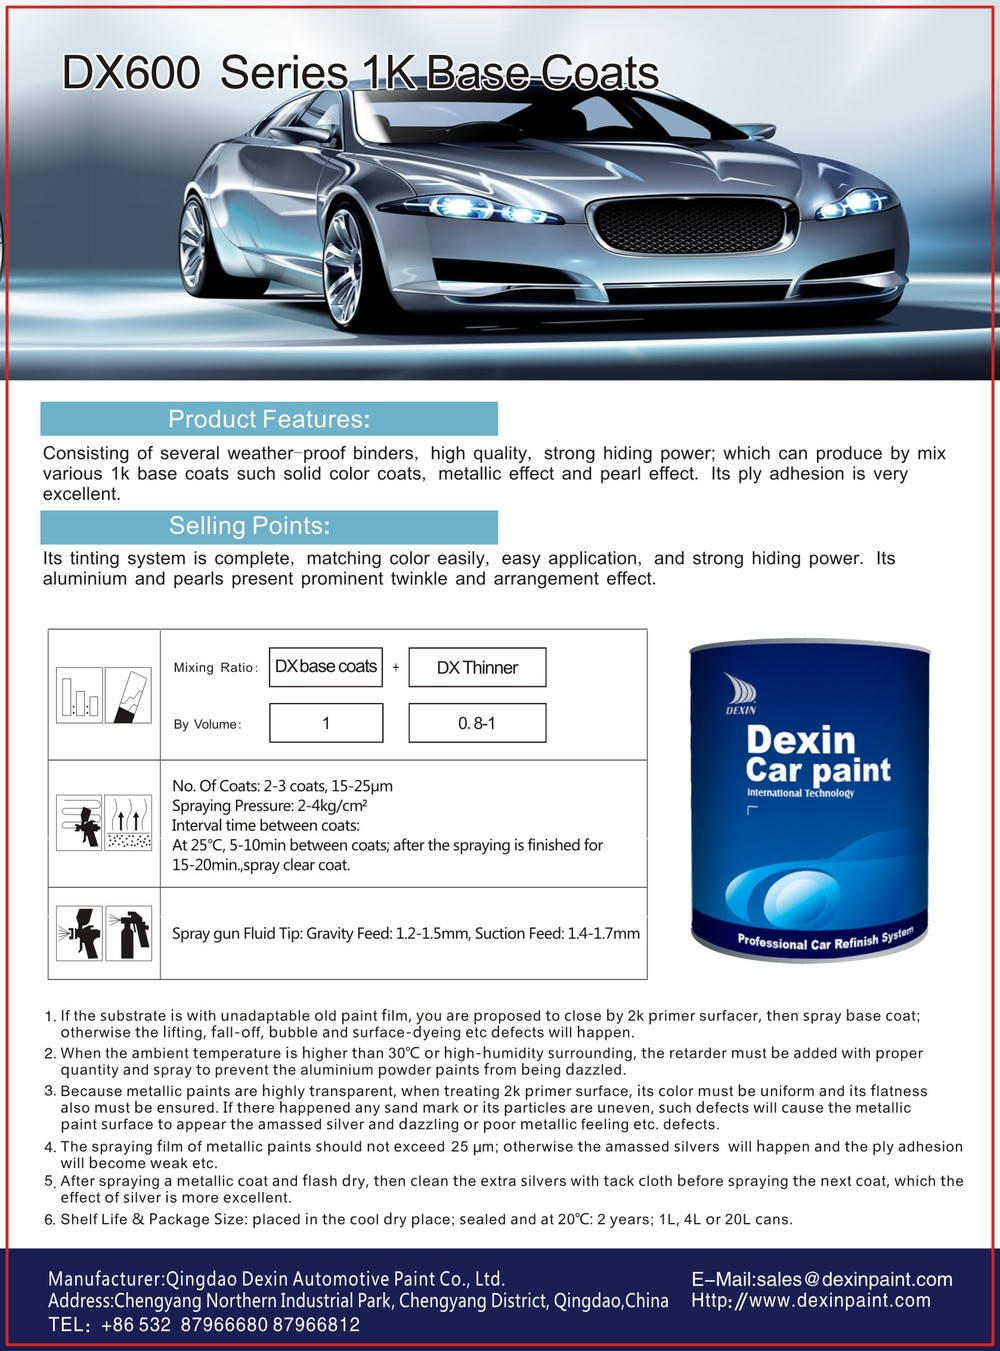 Dexin Series 1k Metallic Auto Paint